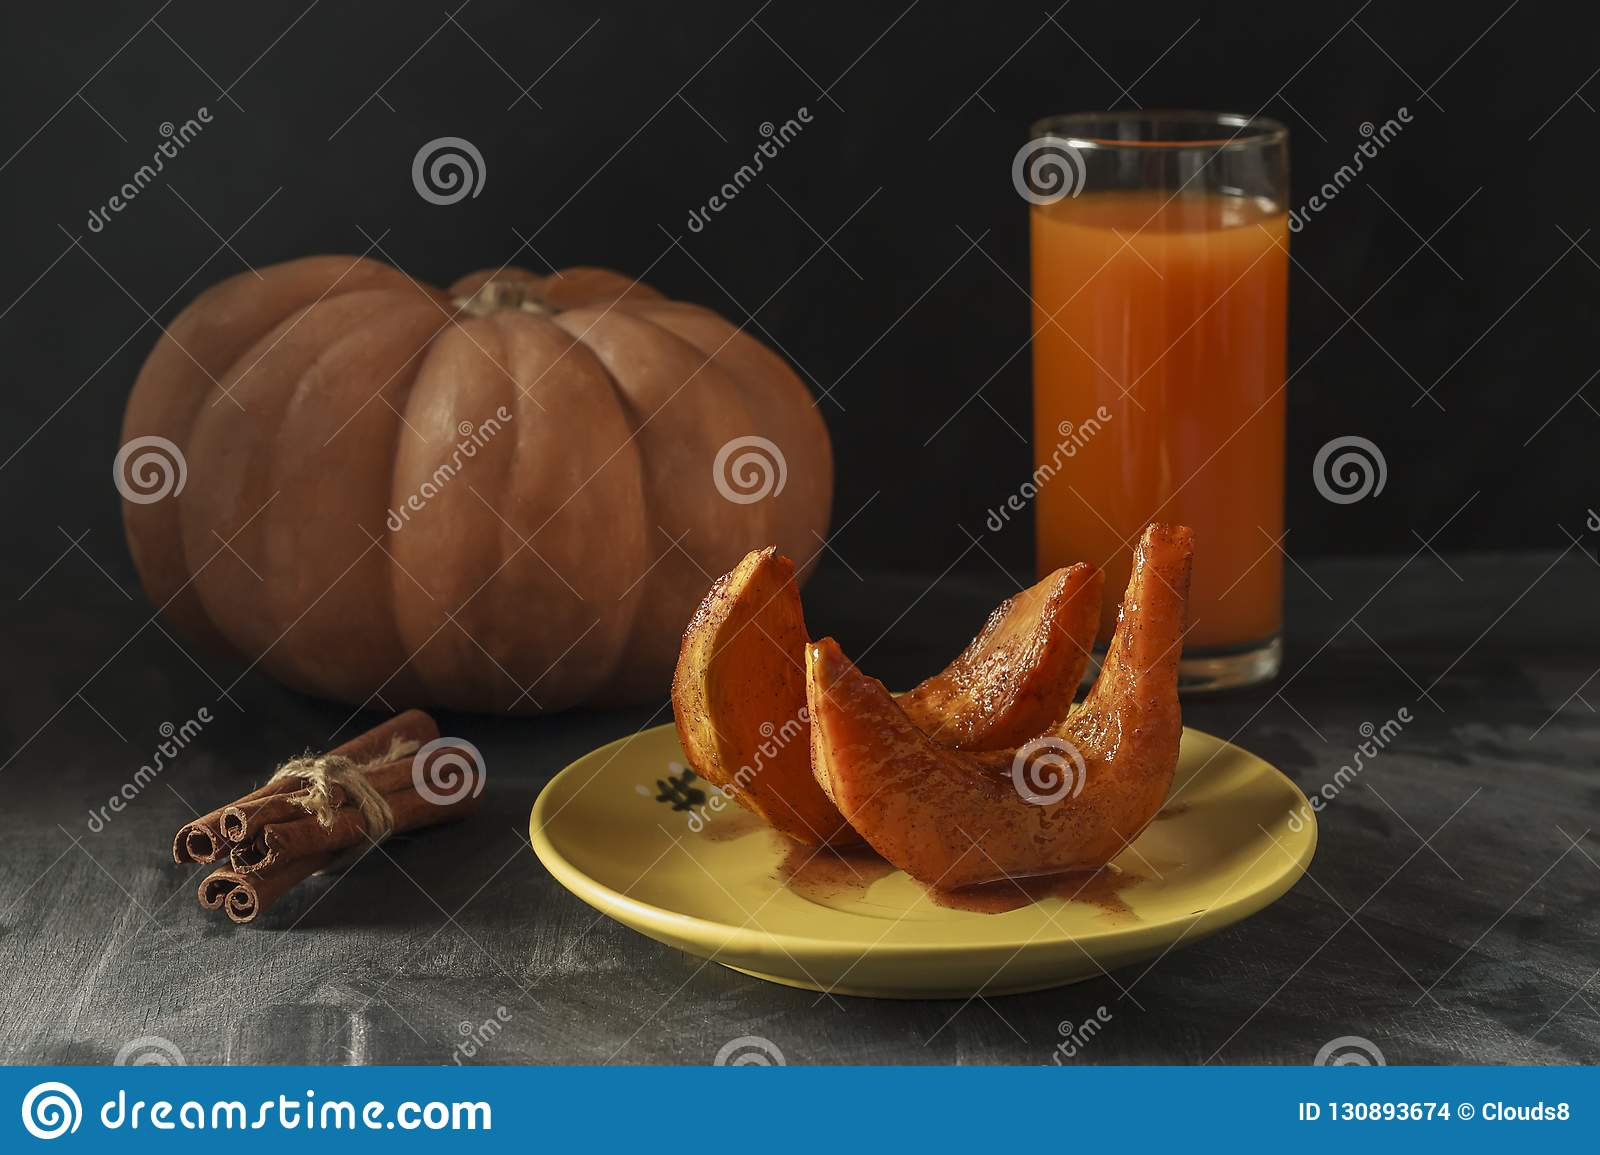 Baked pumpkin with cinnamon sticks, rustic spoon and a glass of juice